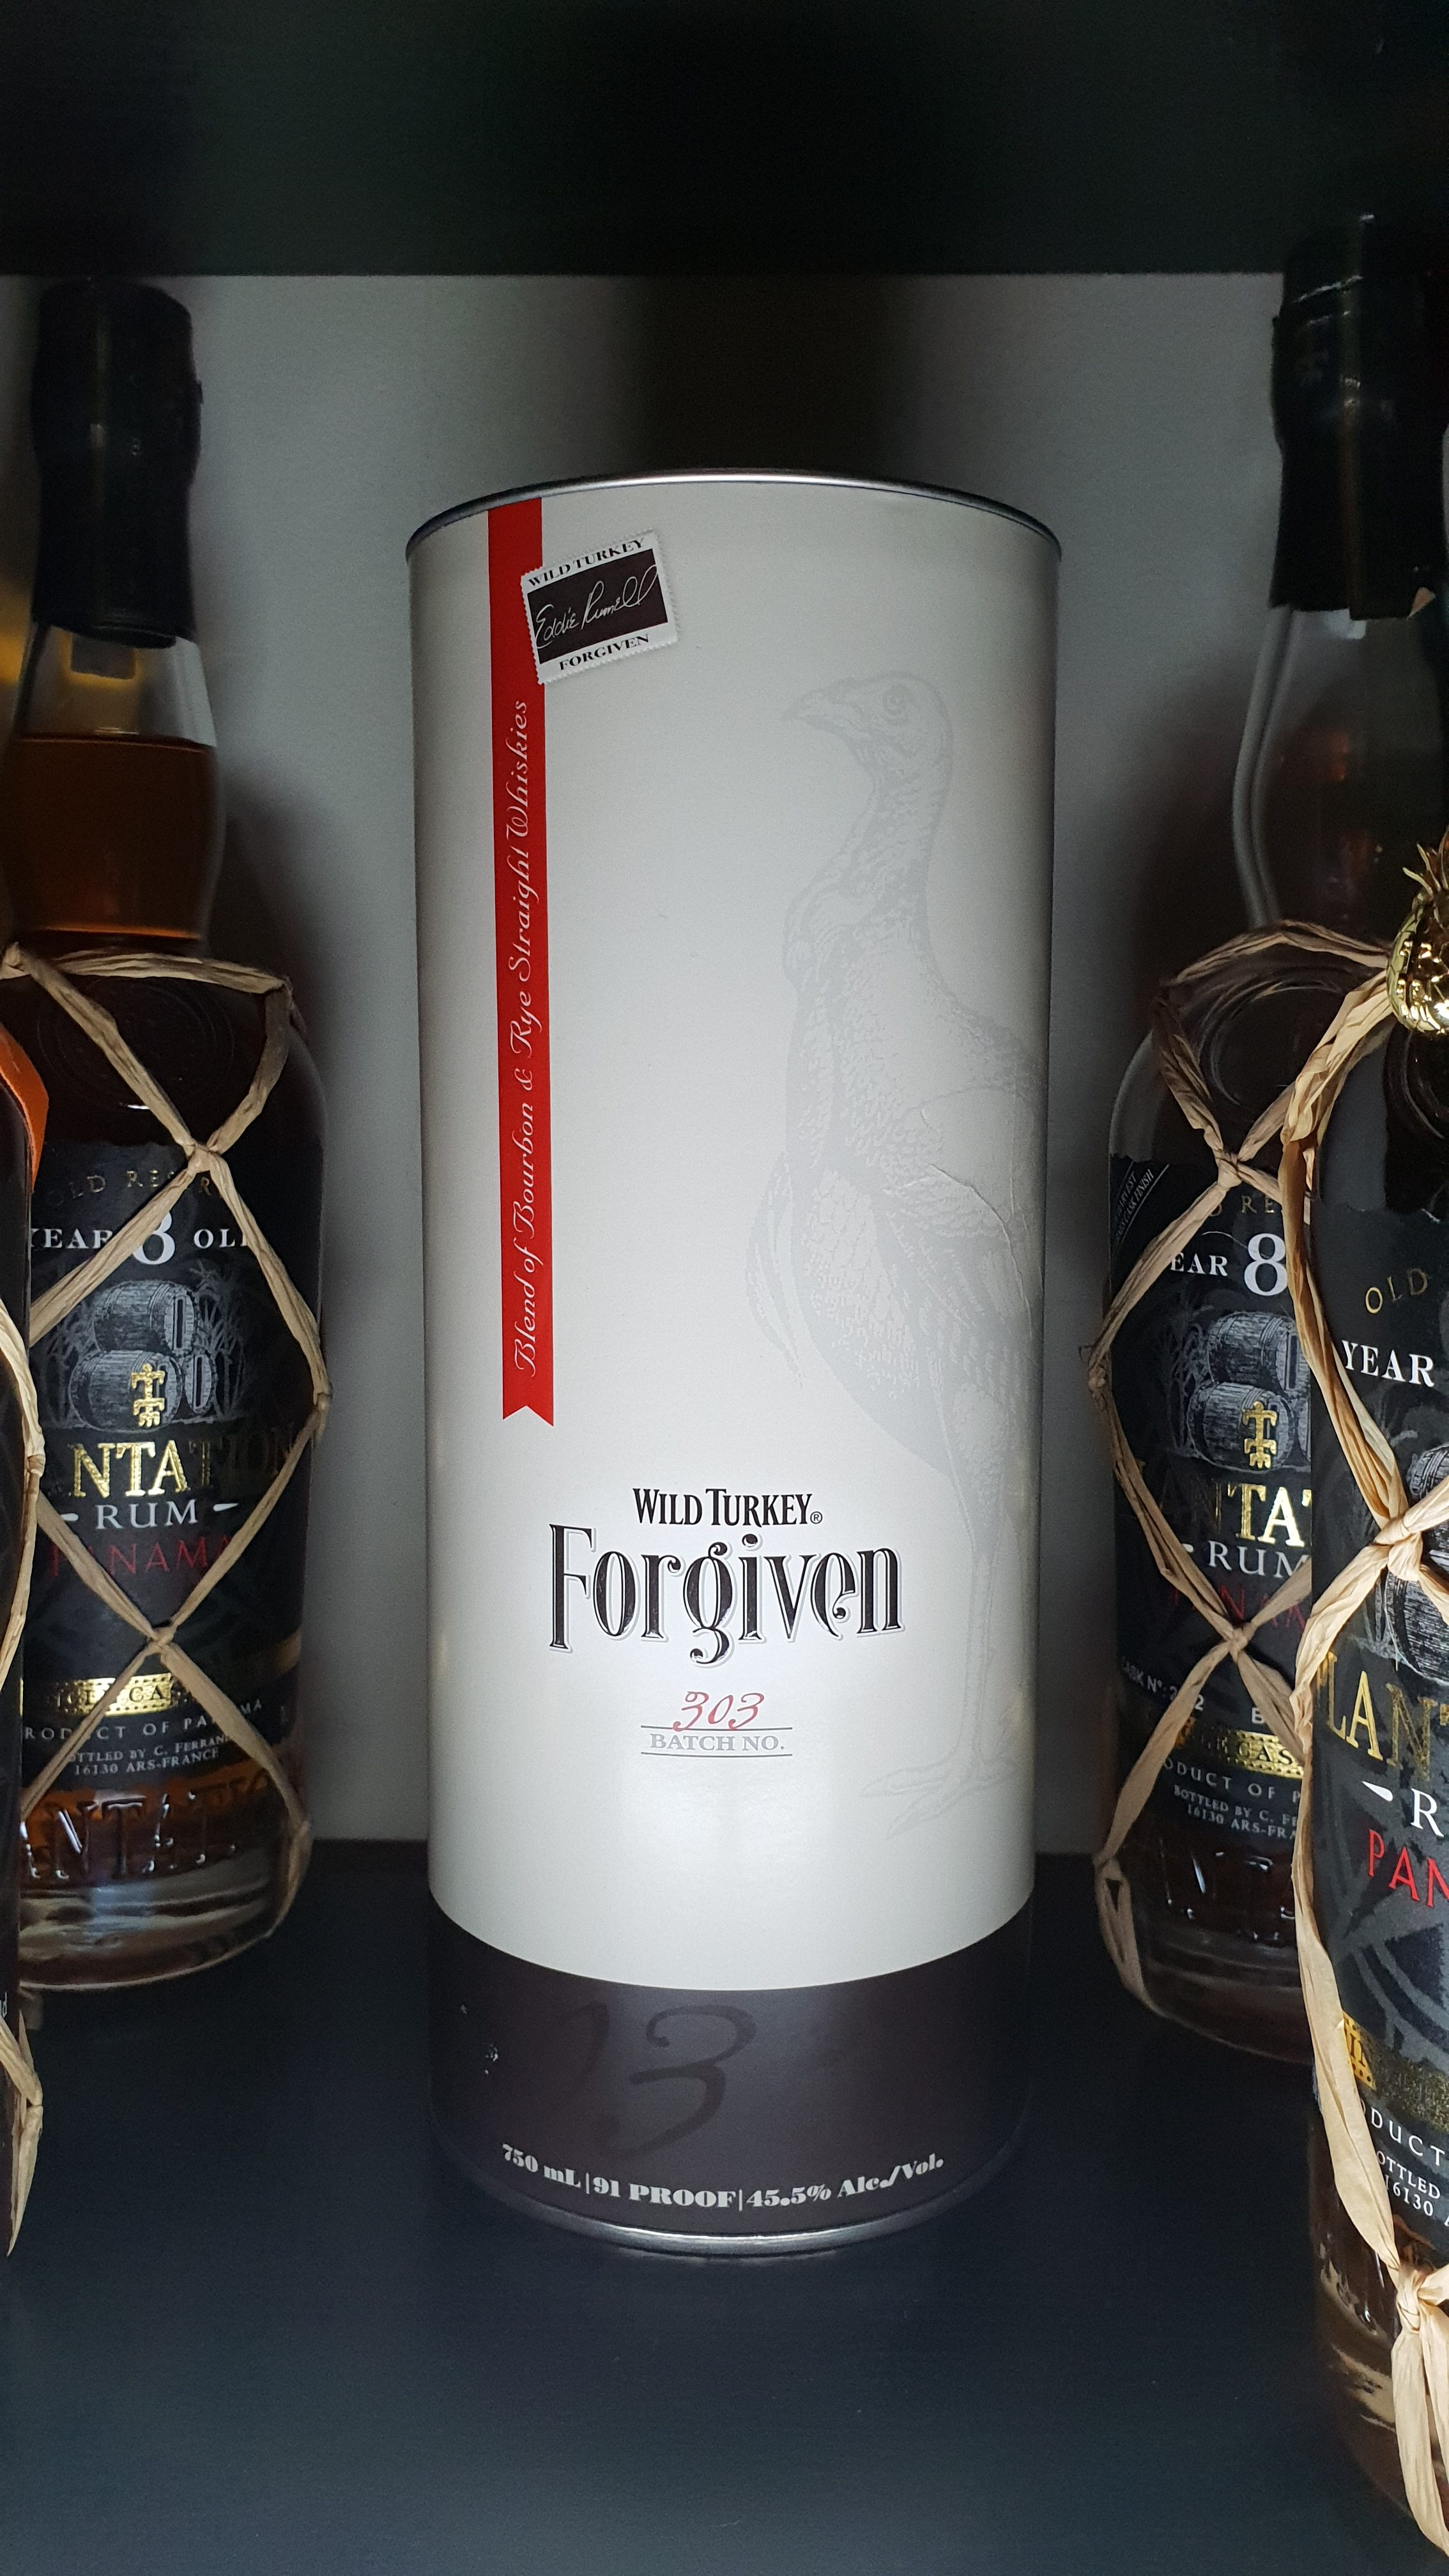 Wild Turkey Forgiven is a blend of 78% six-year-old bourbon and 22% four-year-old rye whiskies. Apparently initially produced due to a mix-up at the distillery, the result was so good they decided to release it.